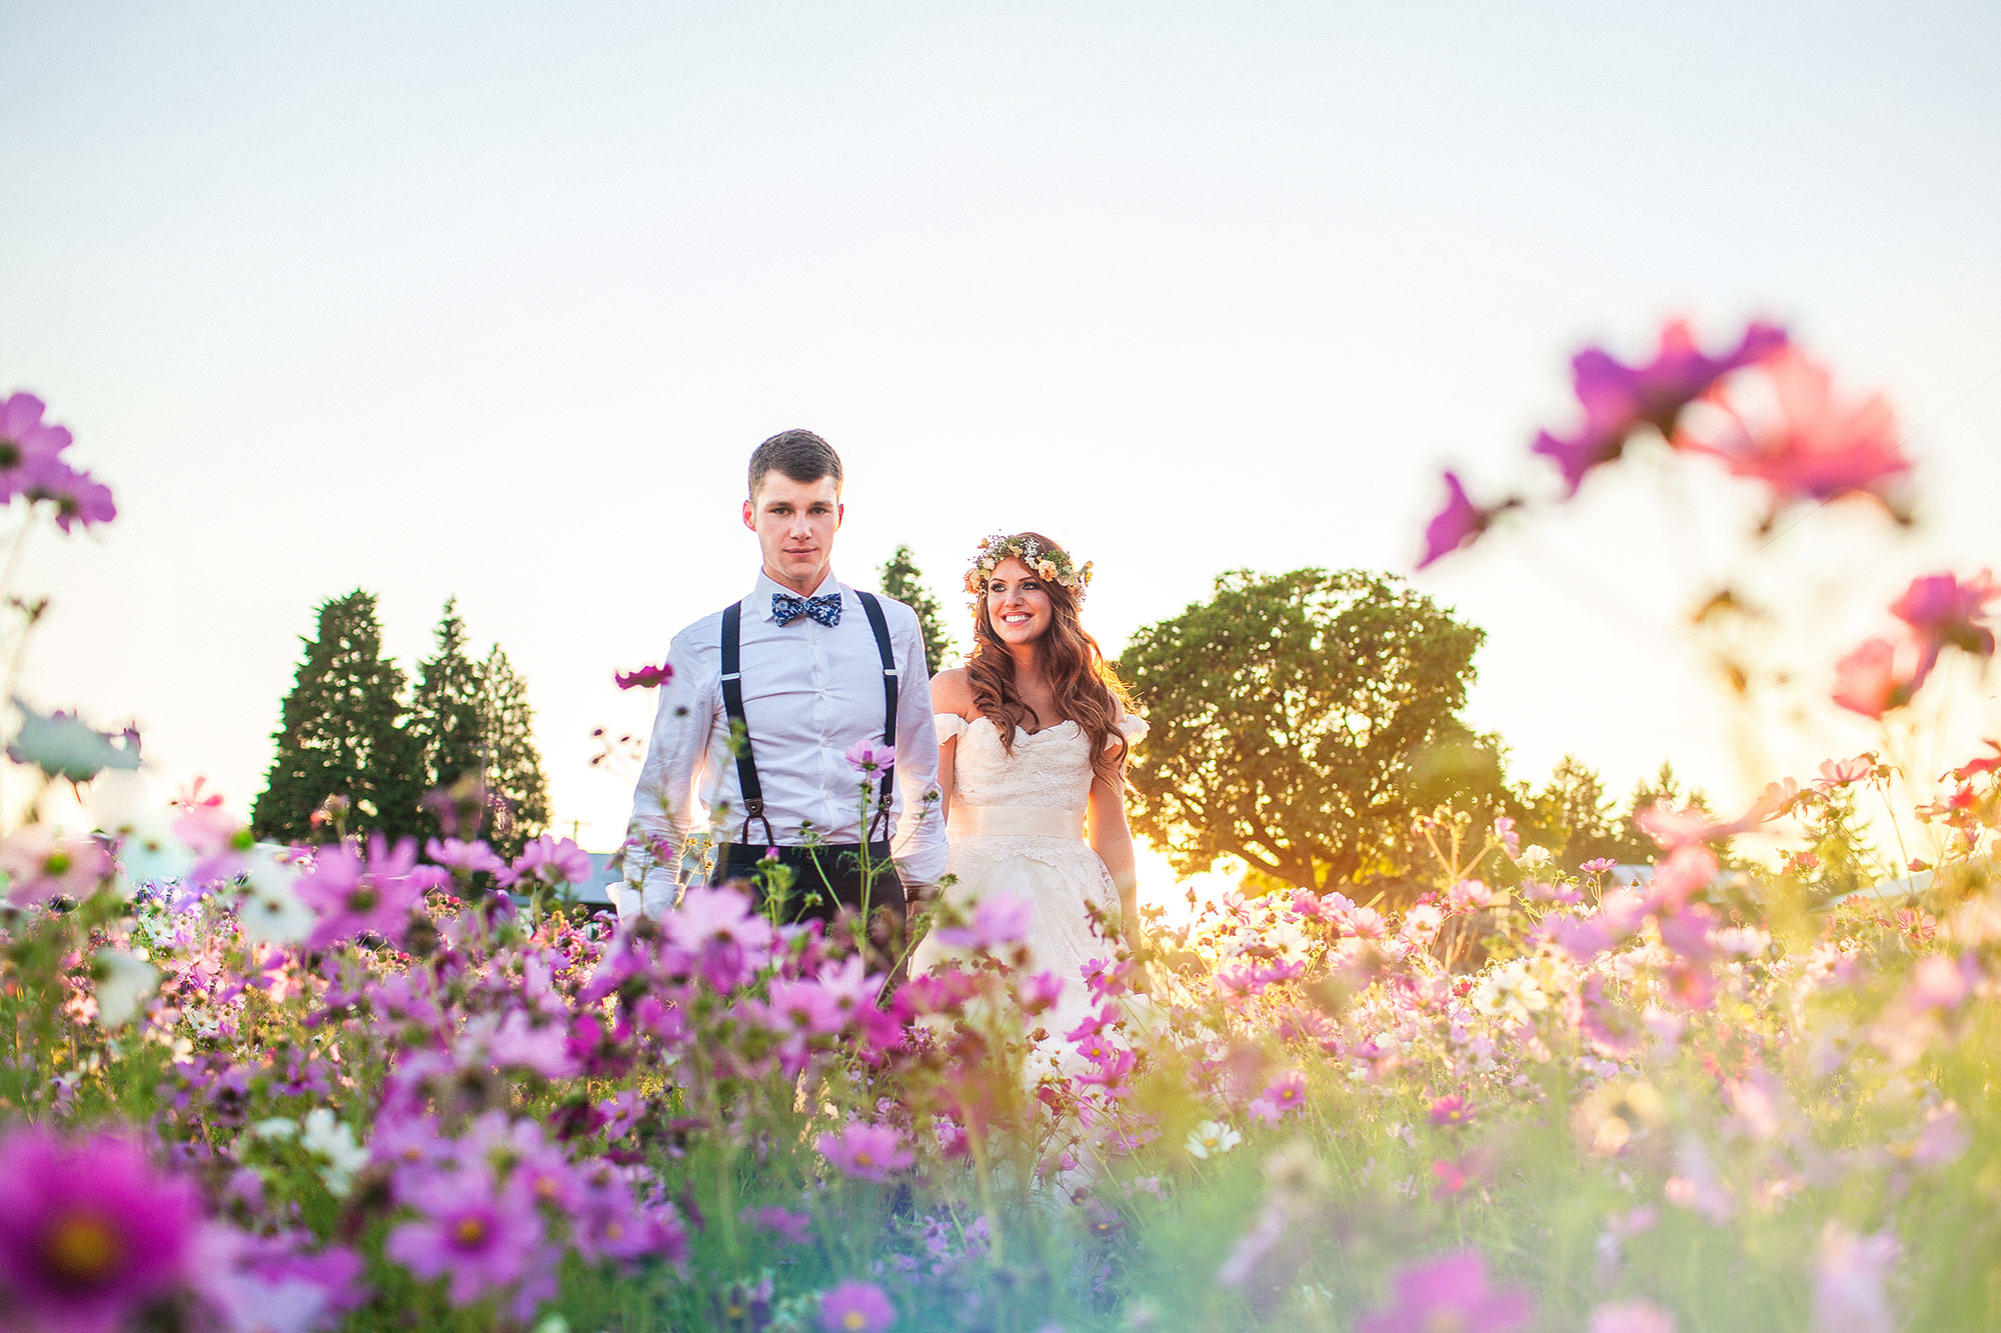 Jeremy roloff and audrey bottis wedding photos little people jeremy is the first of the roloff kids to get married junglespirit Gallery